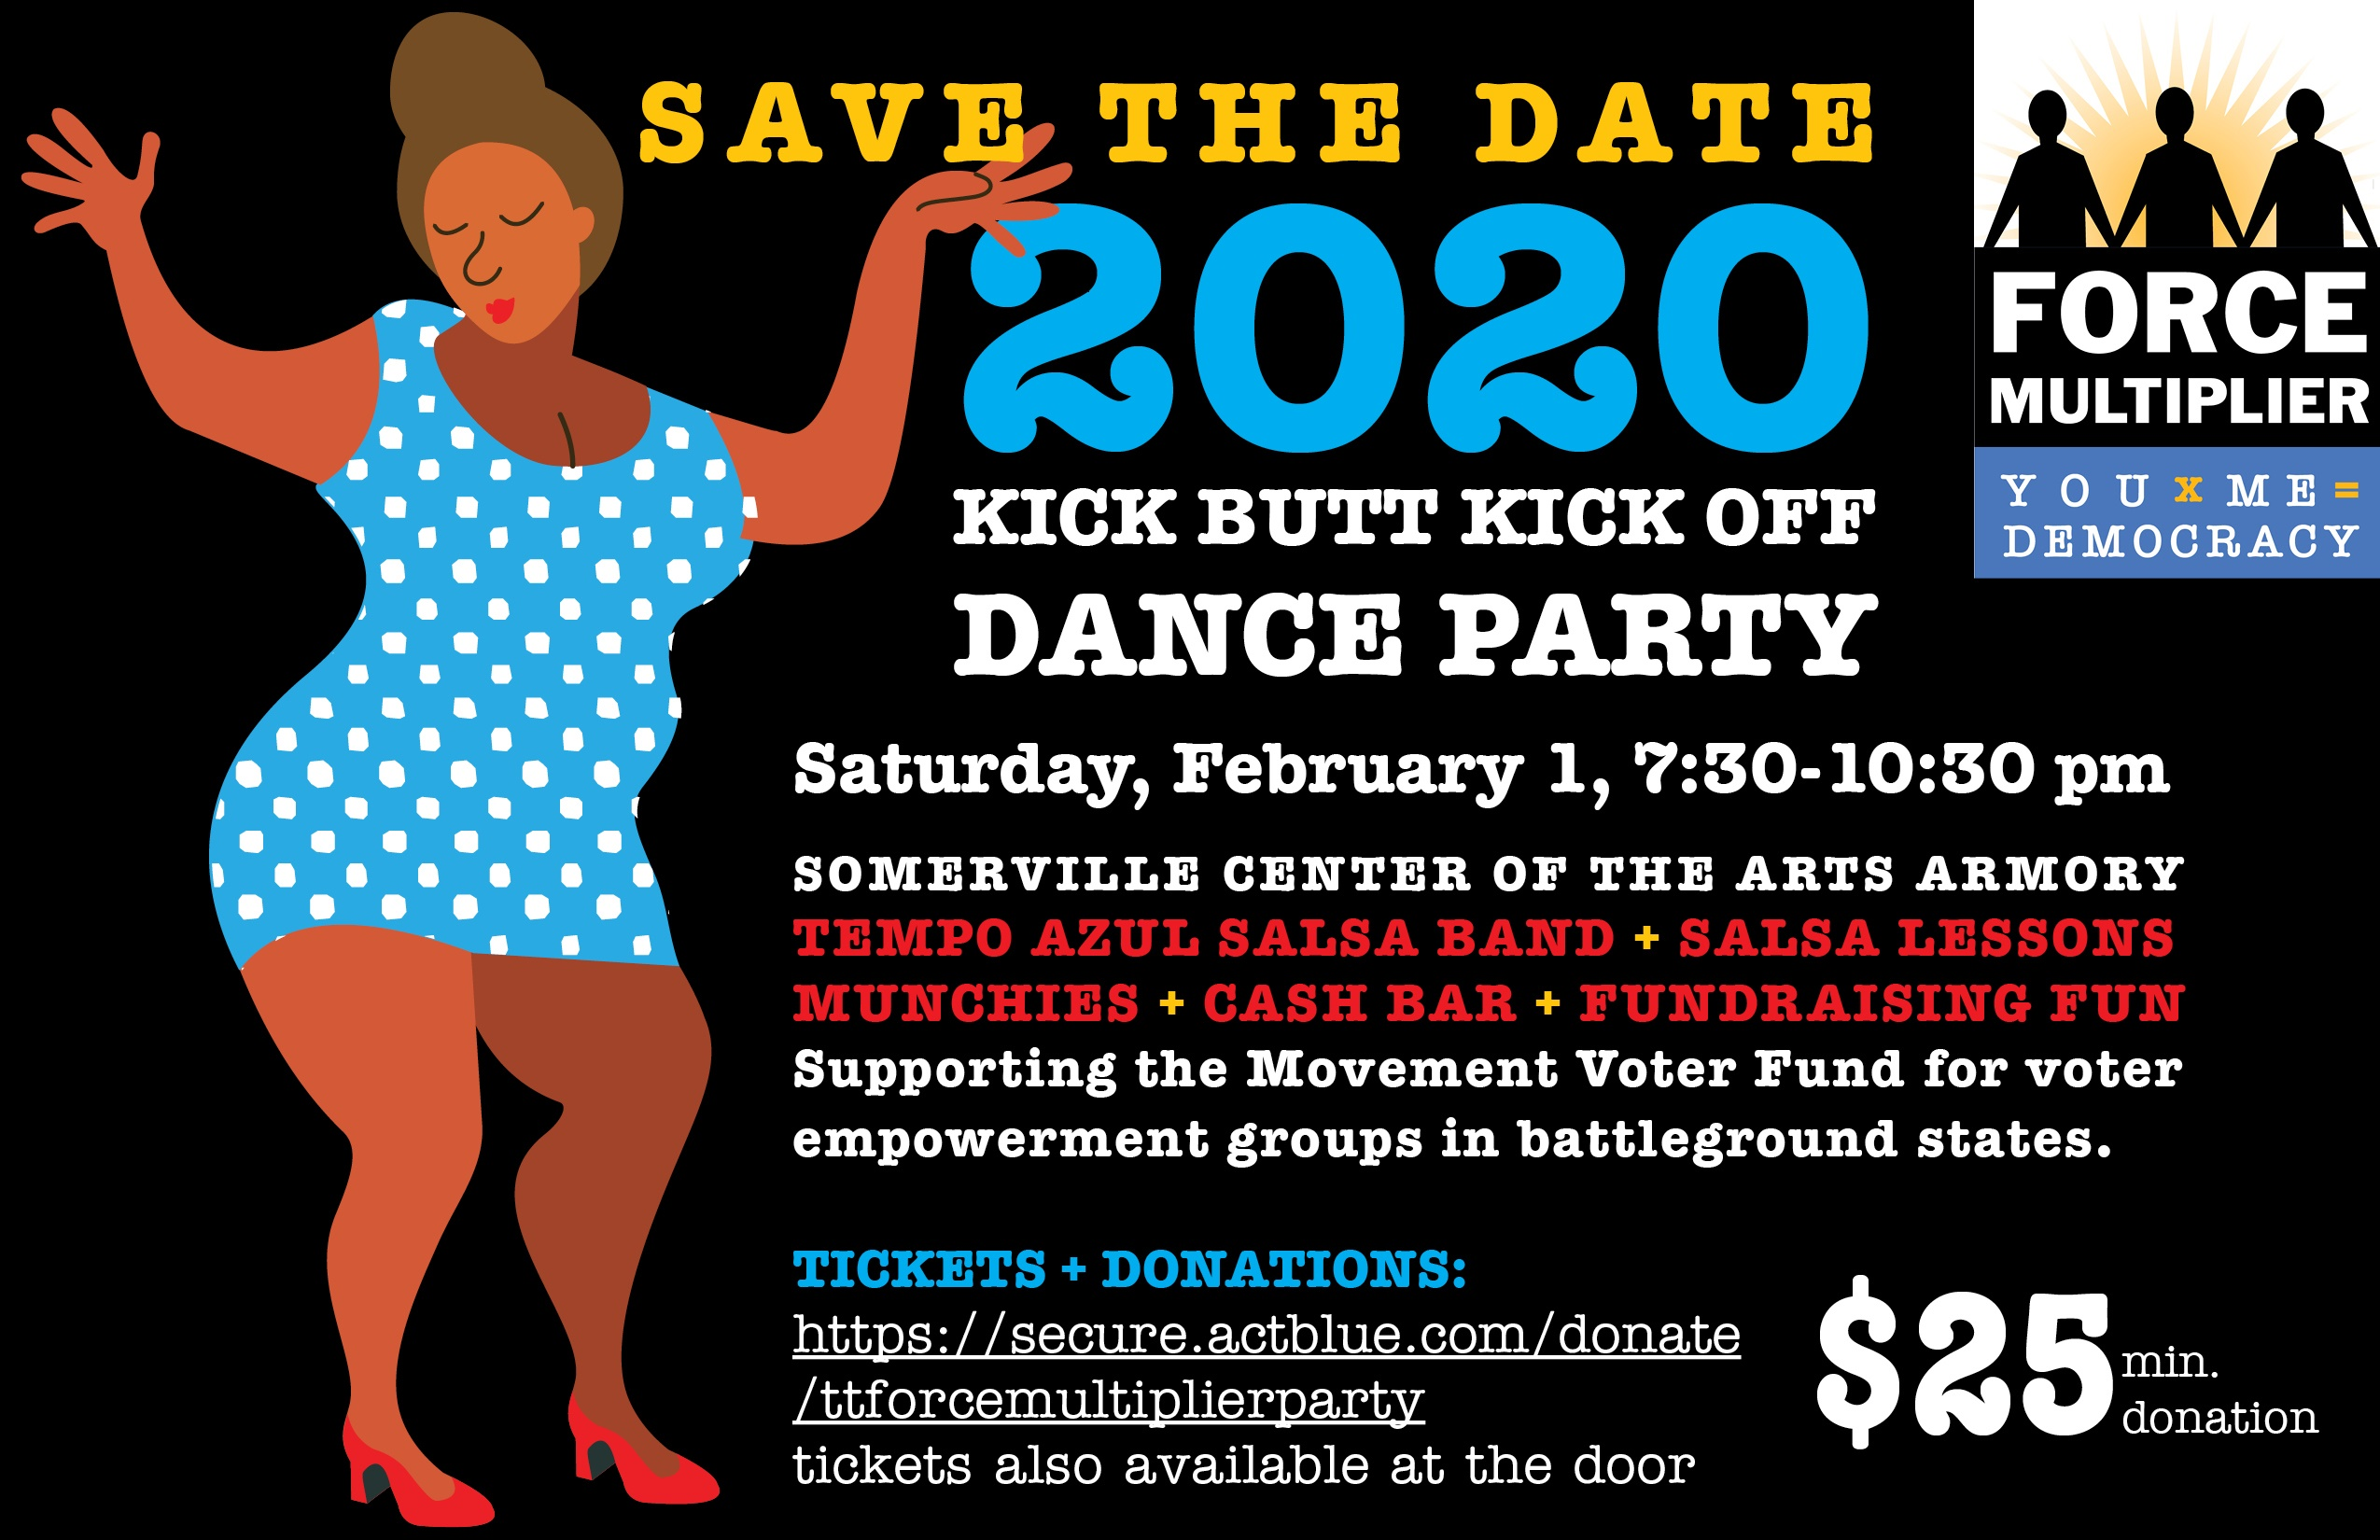 2020 kick butt kick off dance party